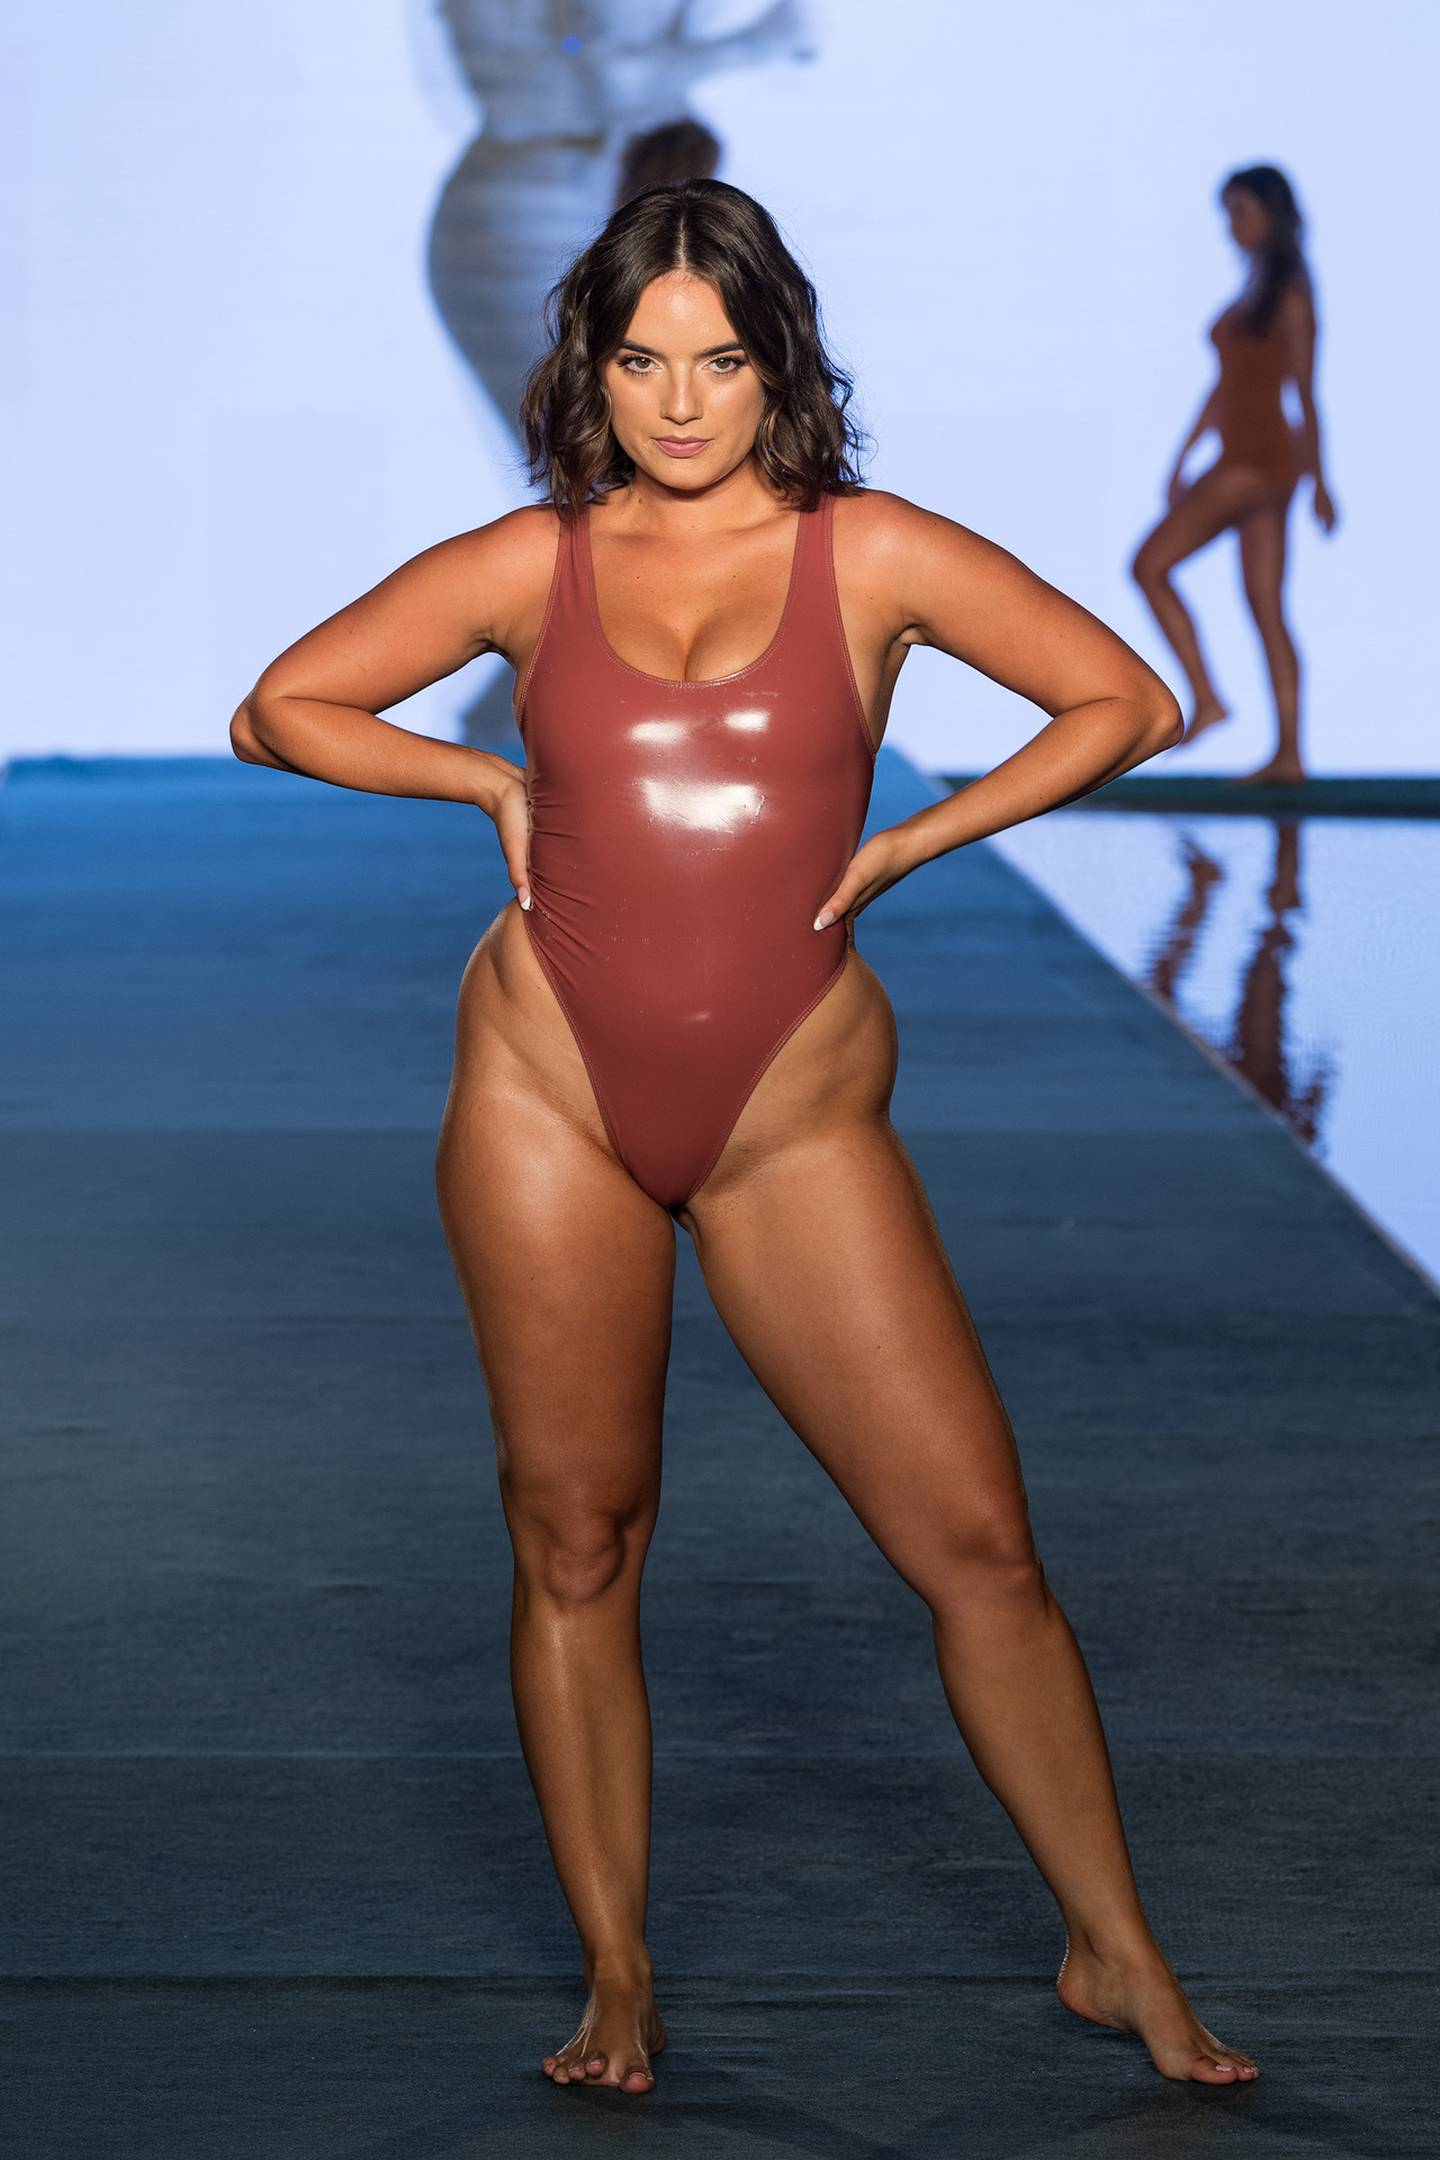 Fans loved seeing real curves at the event. Photo / Getty Images